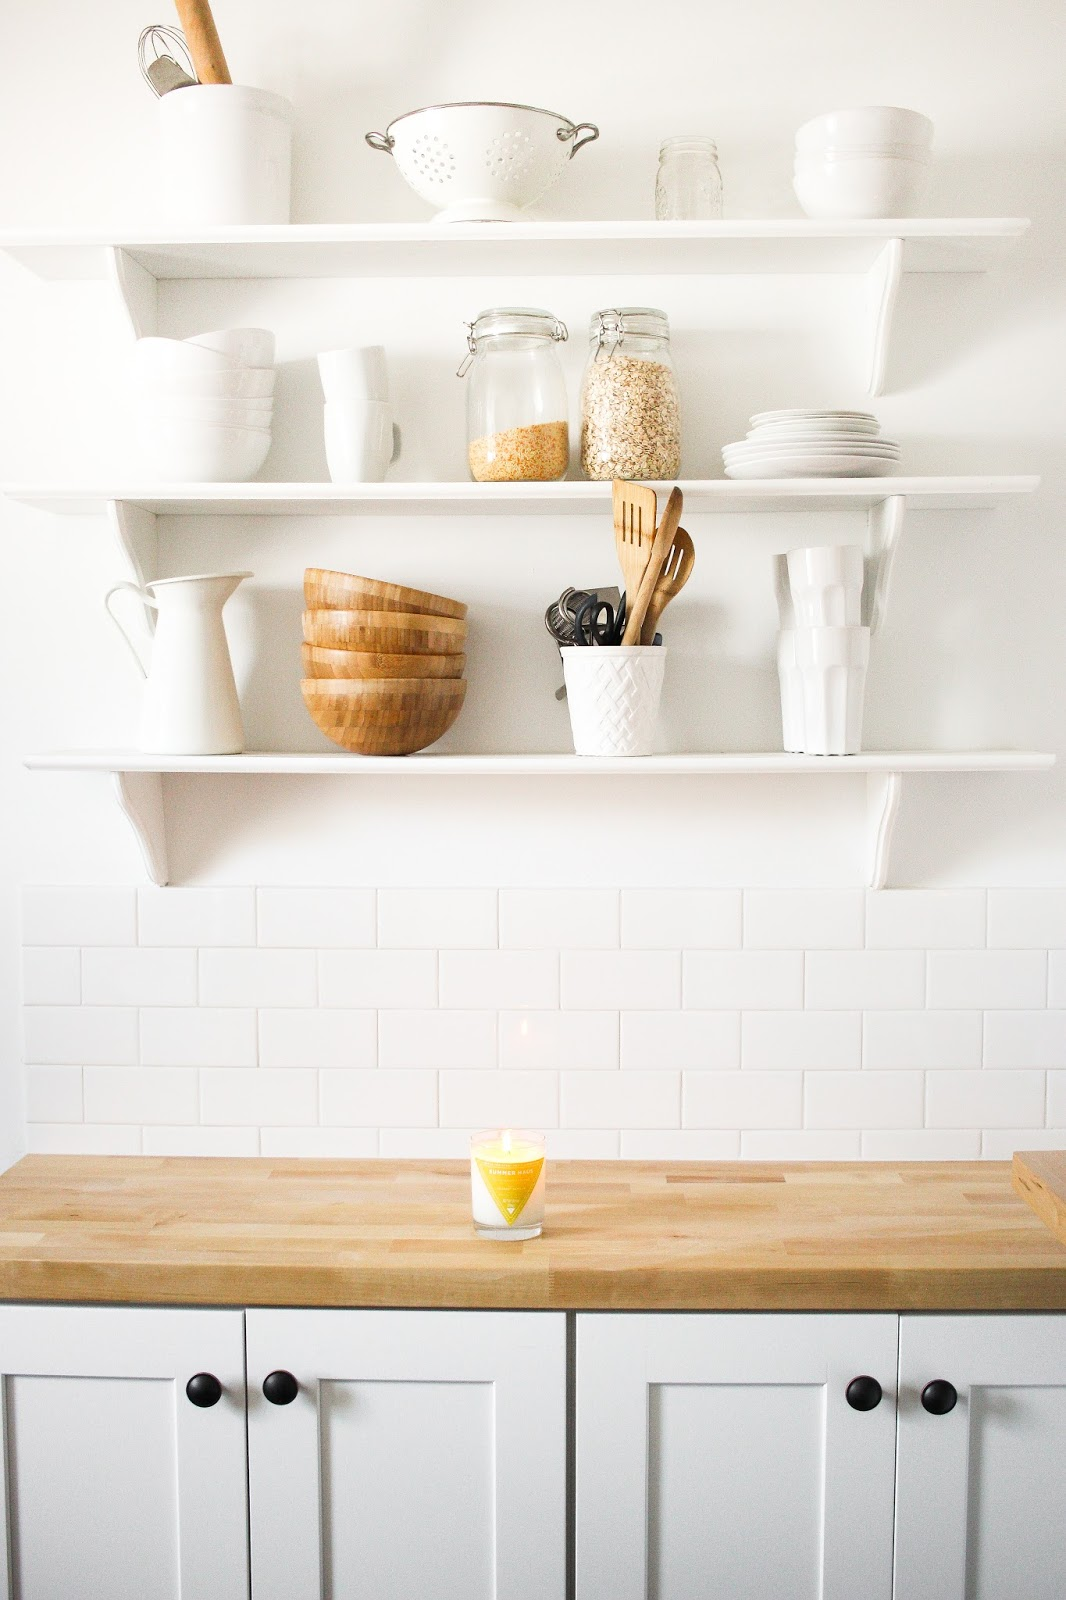 farmhouse kitchen, subway tile kitchen, white and wood kitchen, butcher block counter, west elm kitchen, open shelving with wood, white open shelves